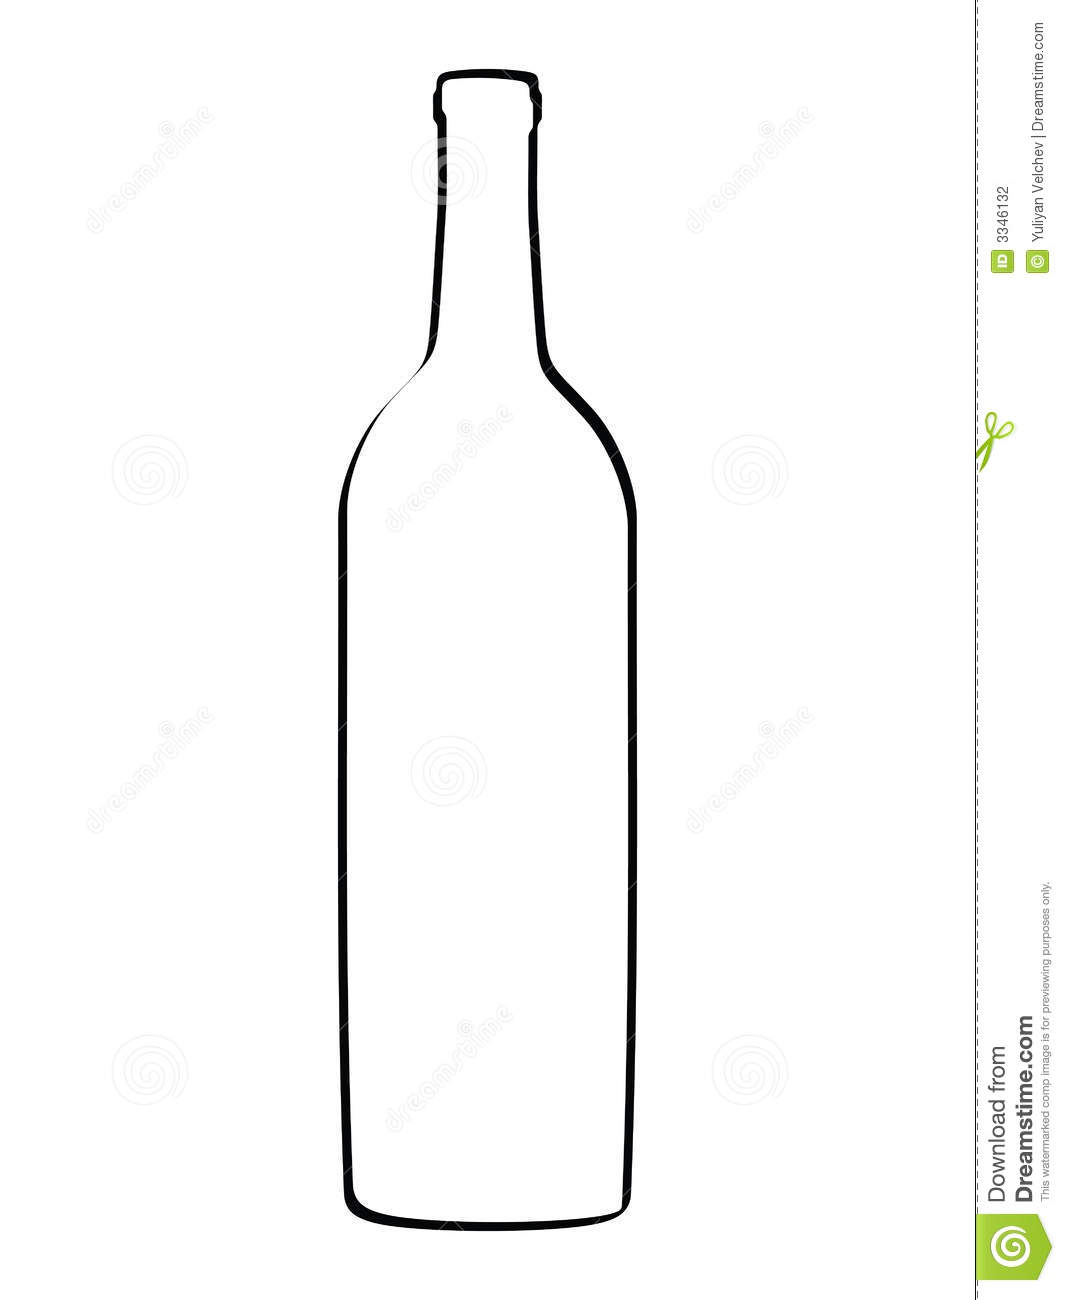 729 Wine Bottle free clipart.